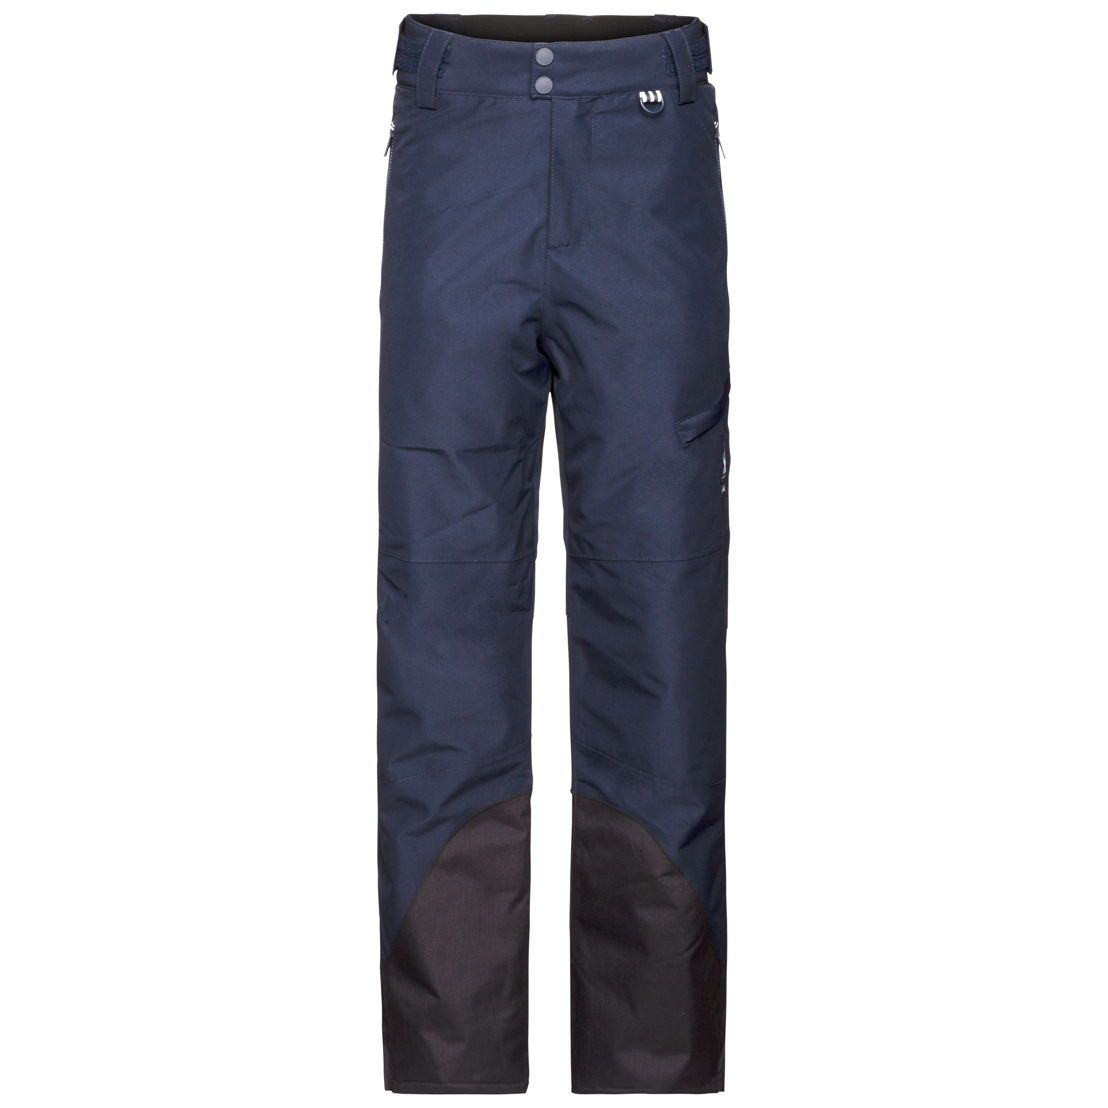 Airstream Ice Sailing pants - Goretex Capsule €399,95